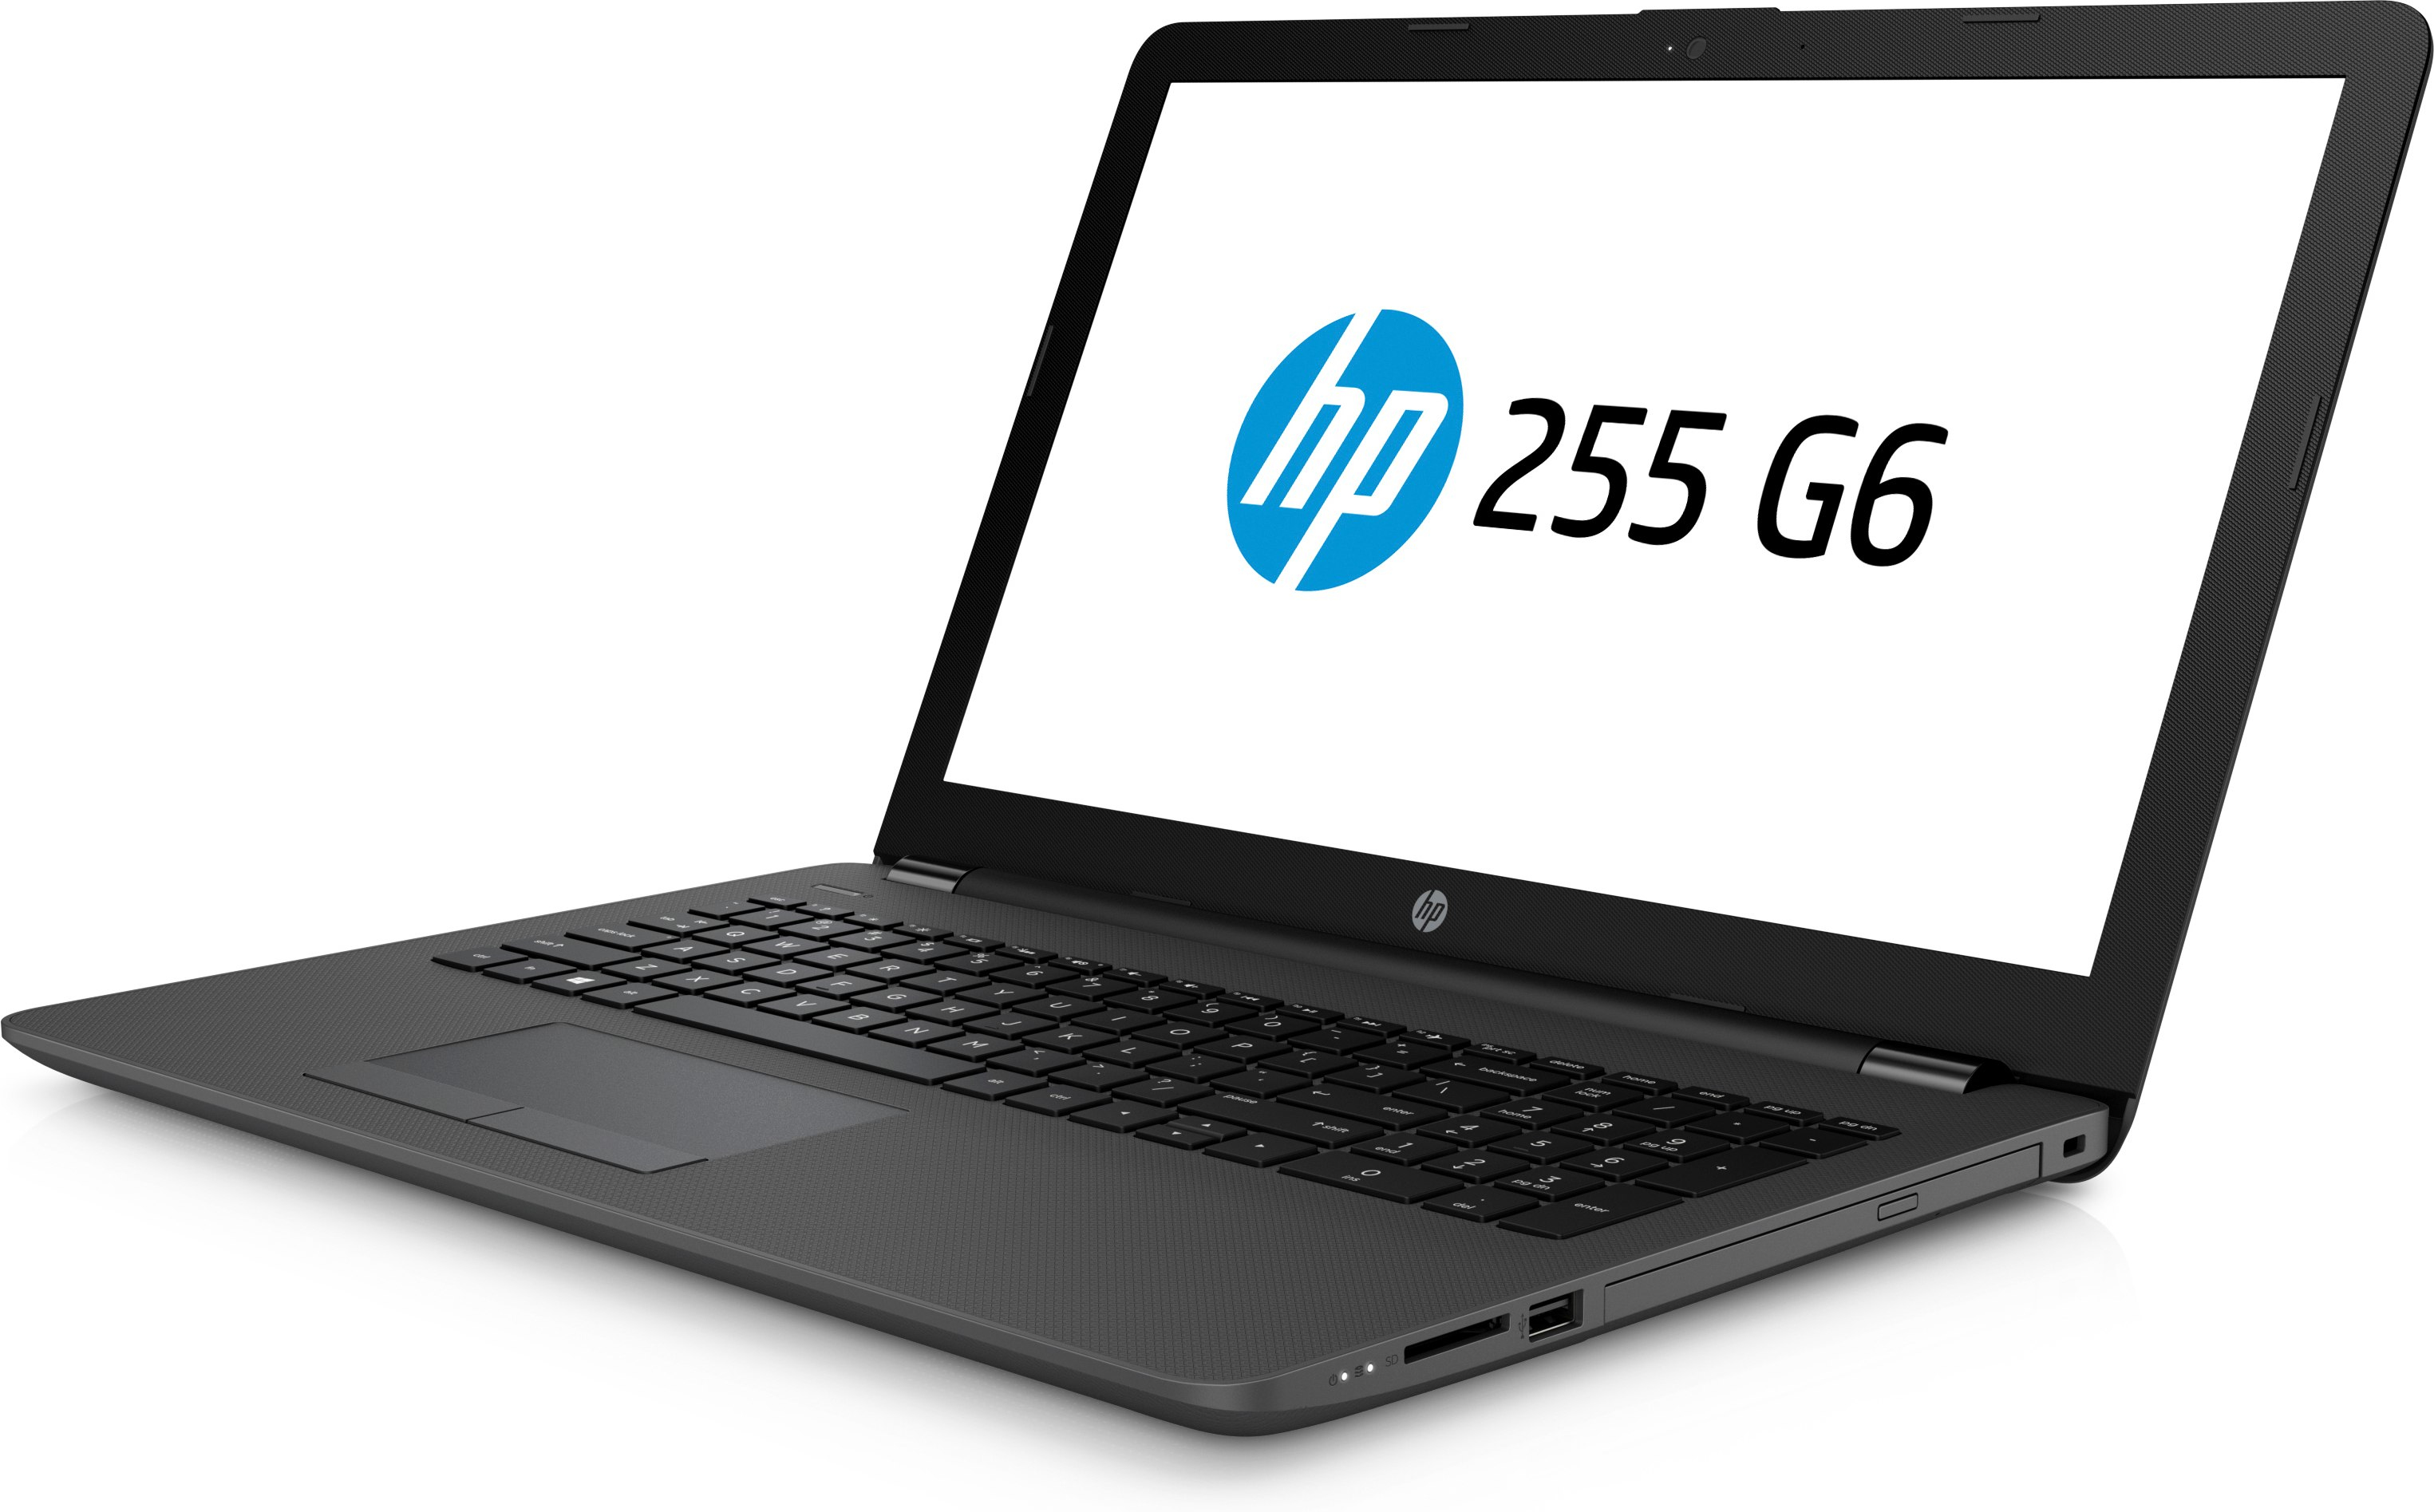 HP 255 G6 AMD E2-9000/4GB/500GB/15.6/FREEDOS